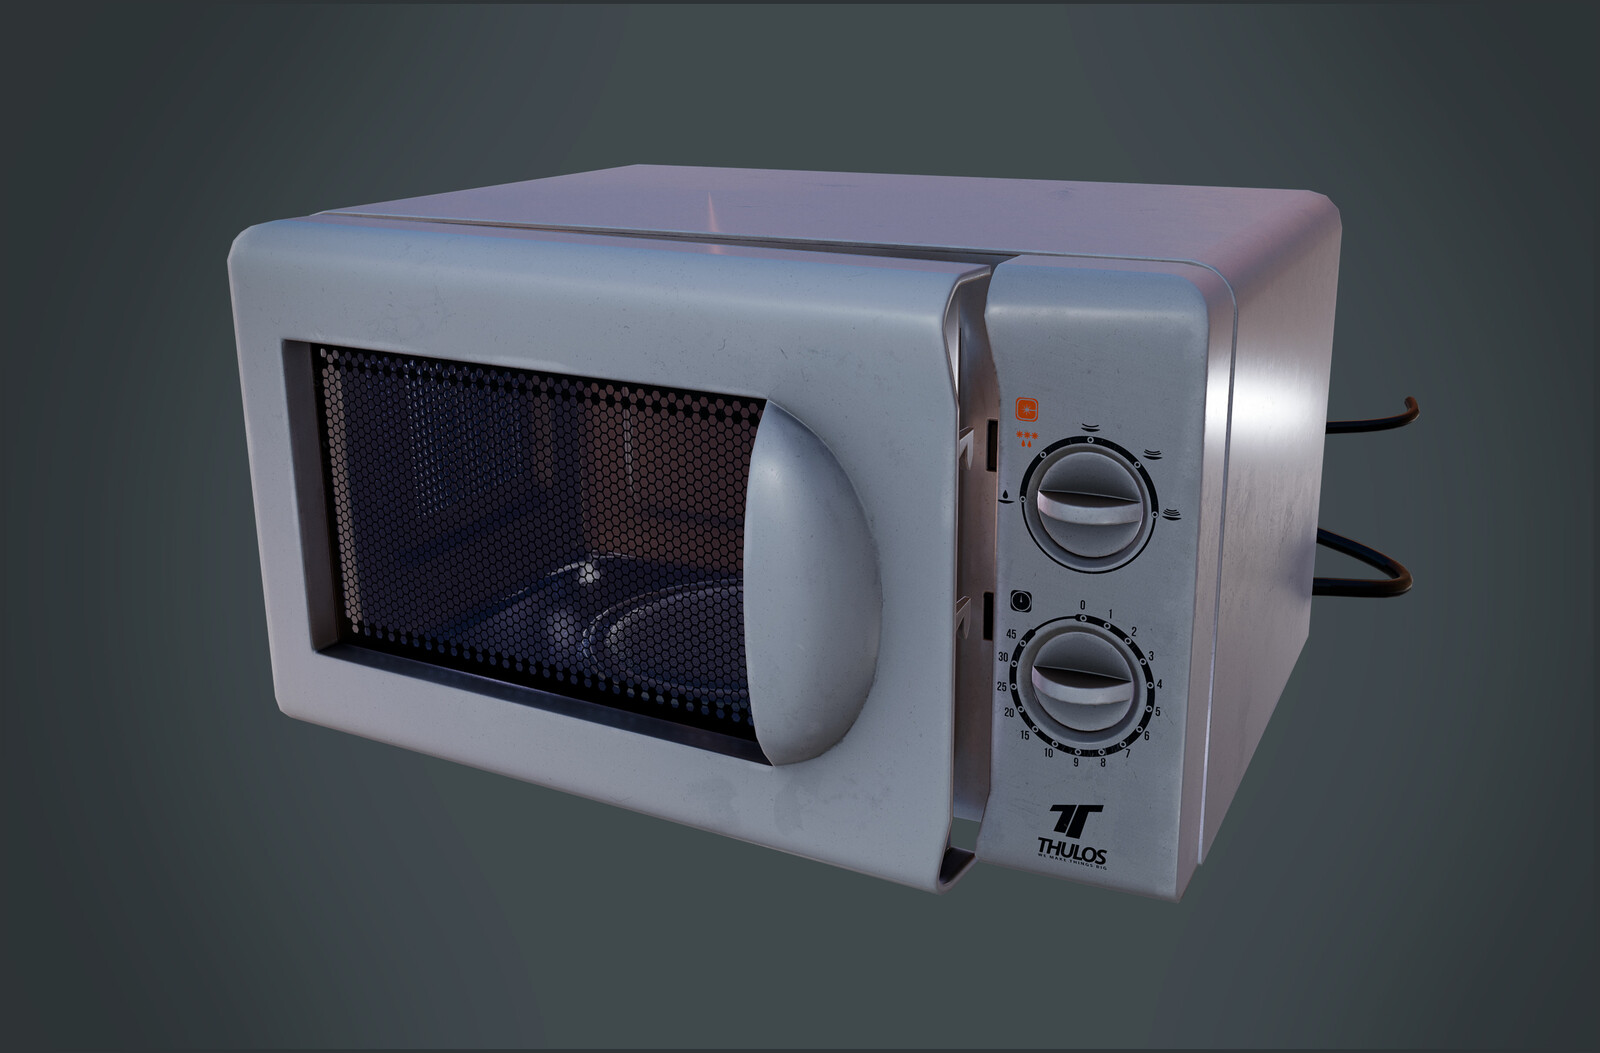 Just another microwave